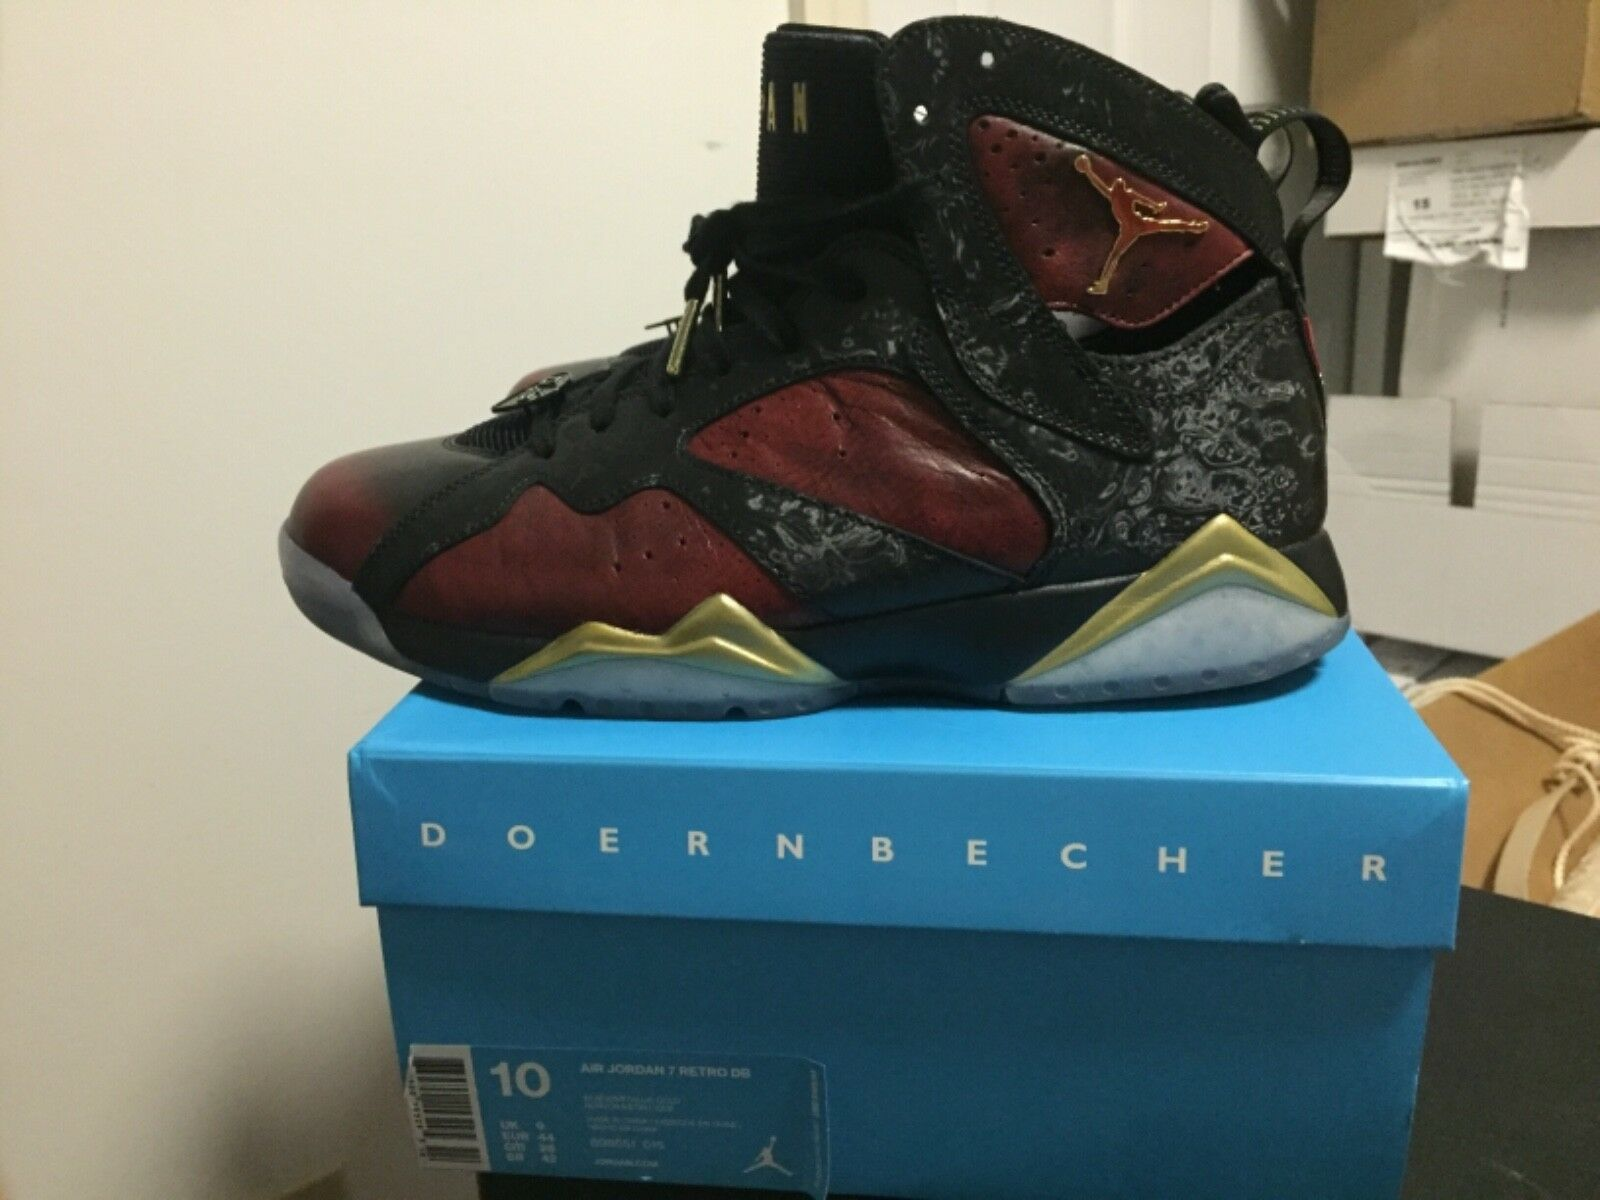 sports shoes 396c1 6465a italy air jordan 7 sz 10 40e85 0a8fe